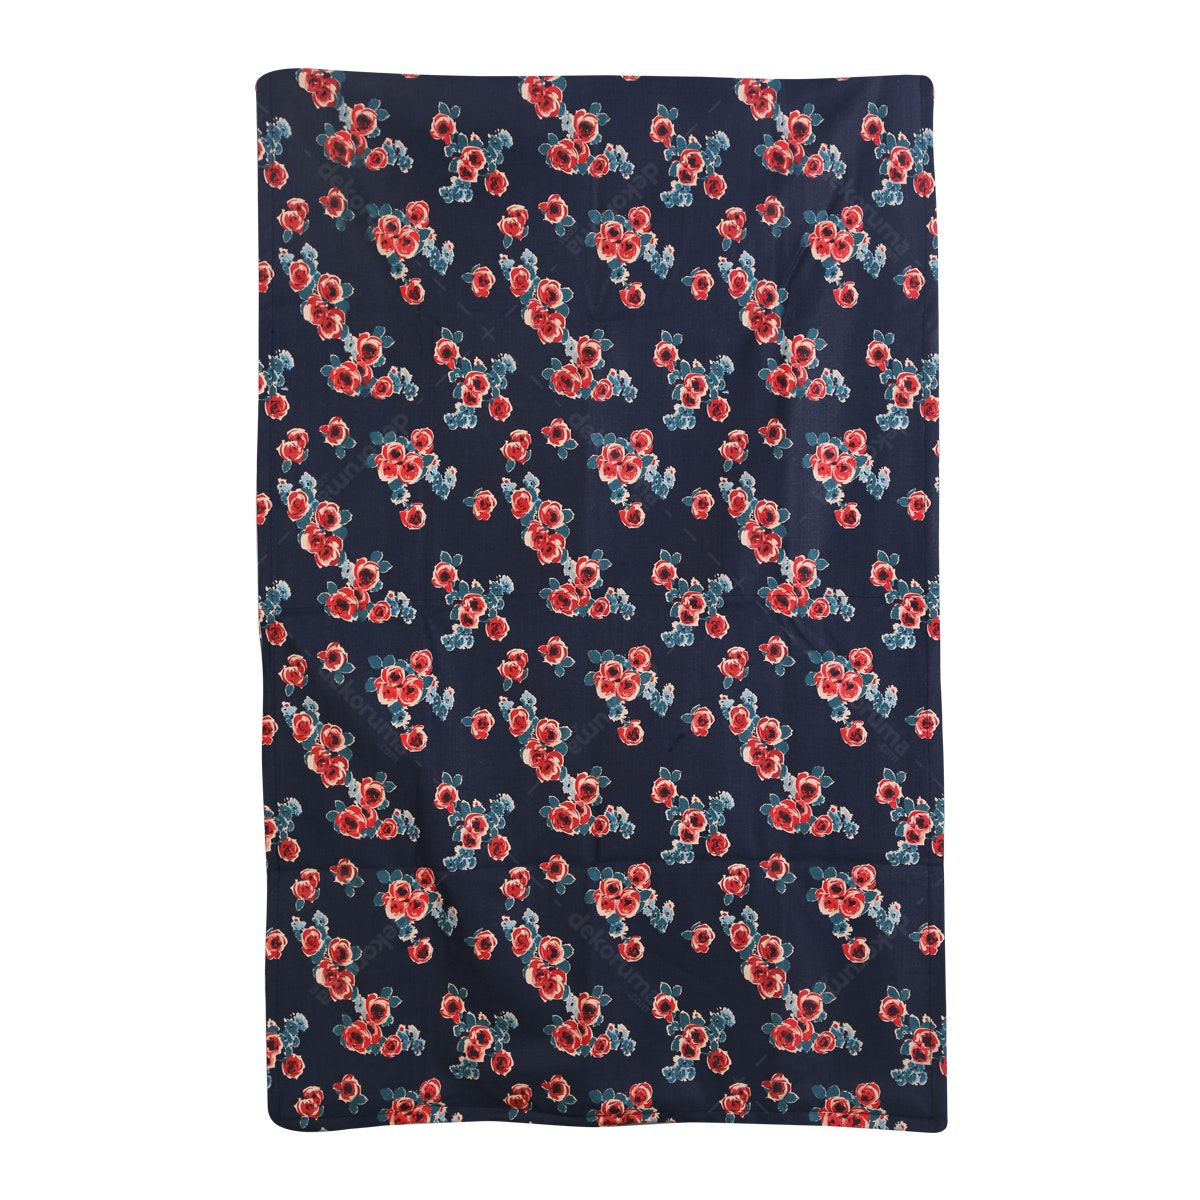 Chic For Home Flower Navy Canvas Rugs